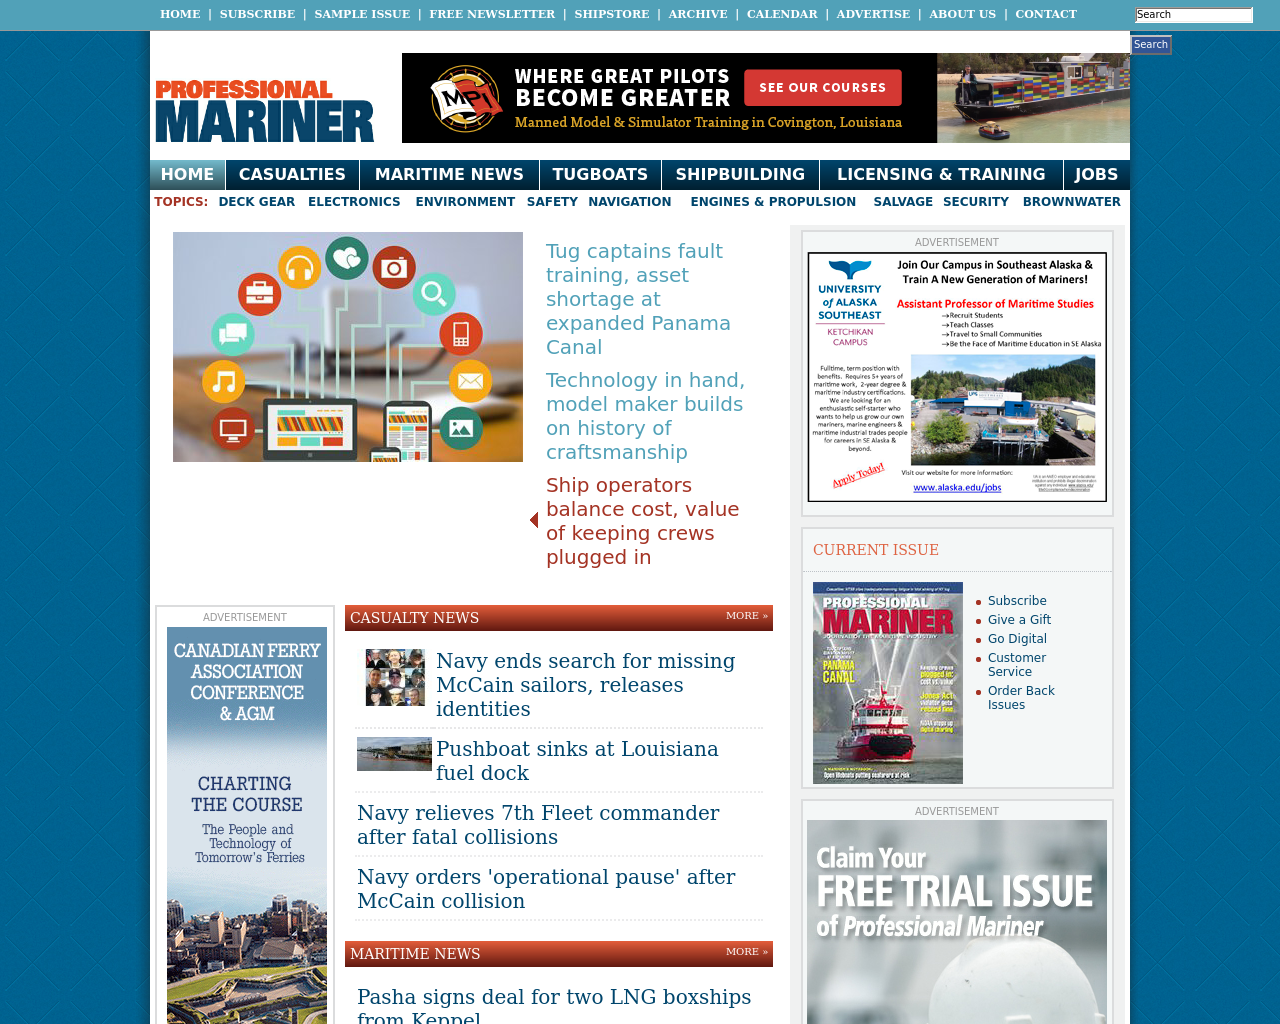 Professional-Mariner-Advertising-Reviews-Pricing